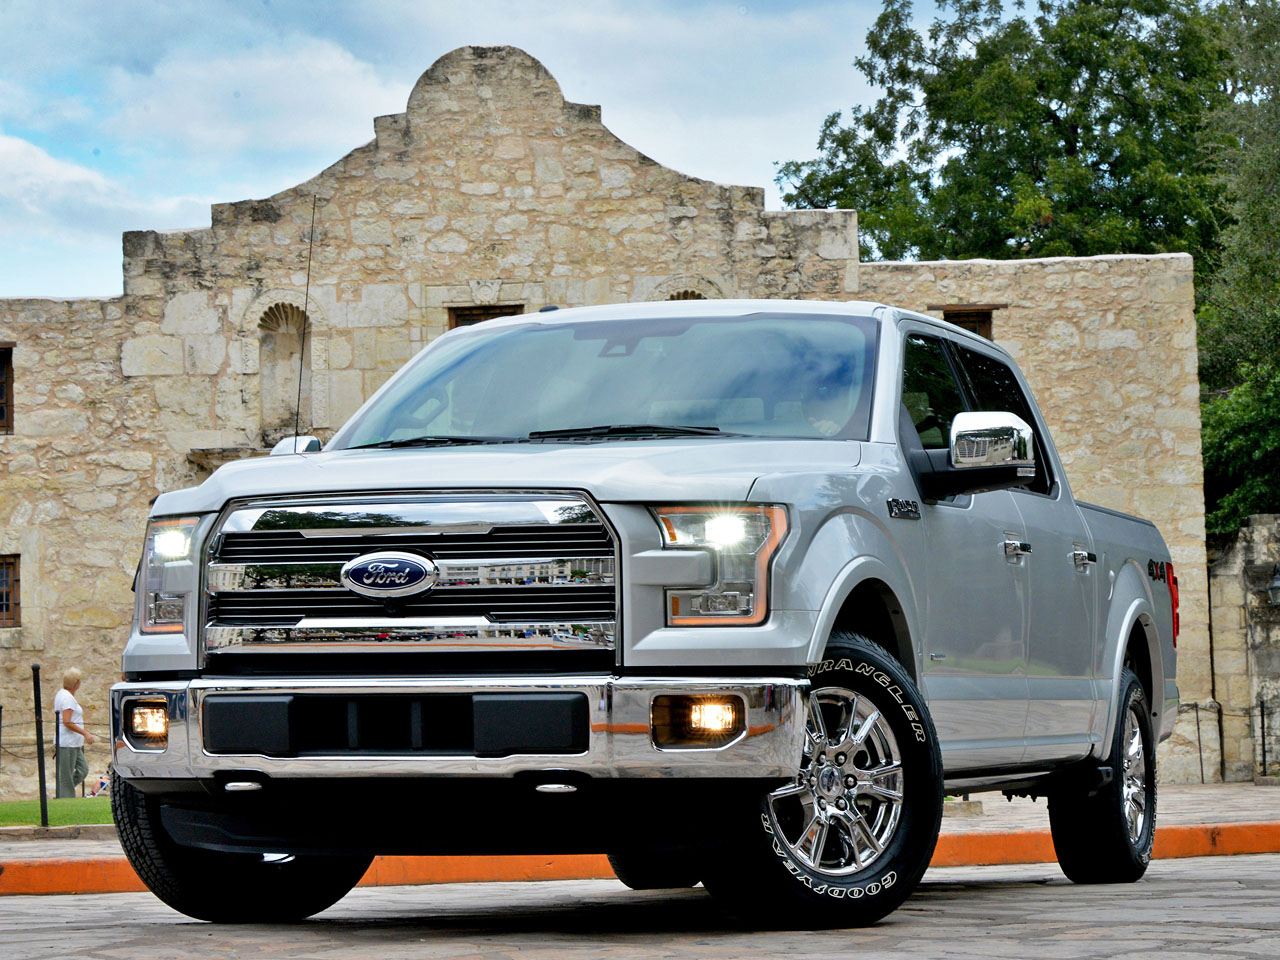 2015 Ford F-150 Lariat SuperCrew 3 5 Ecoboost 4x4 Road Test Review